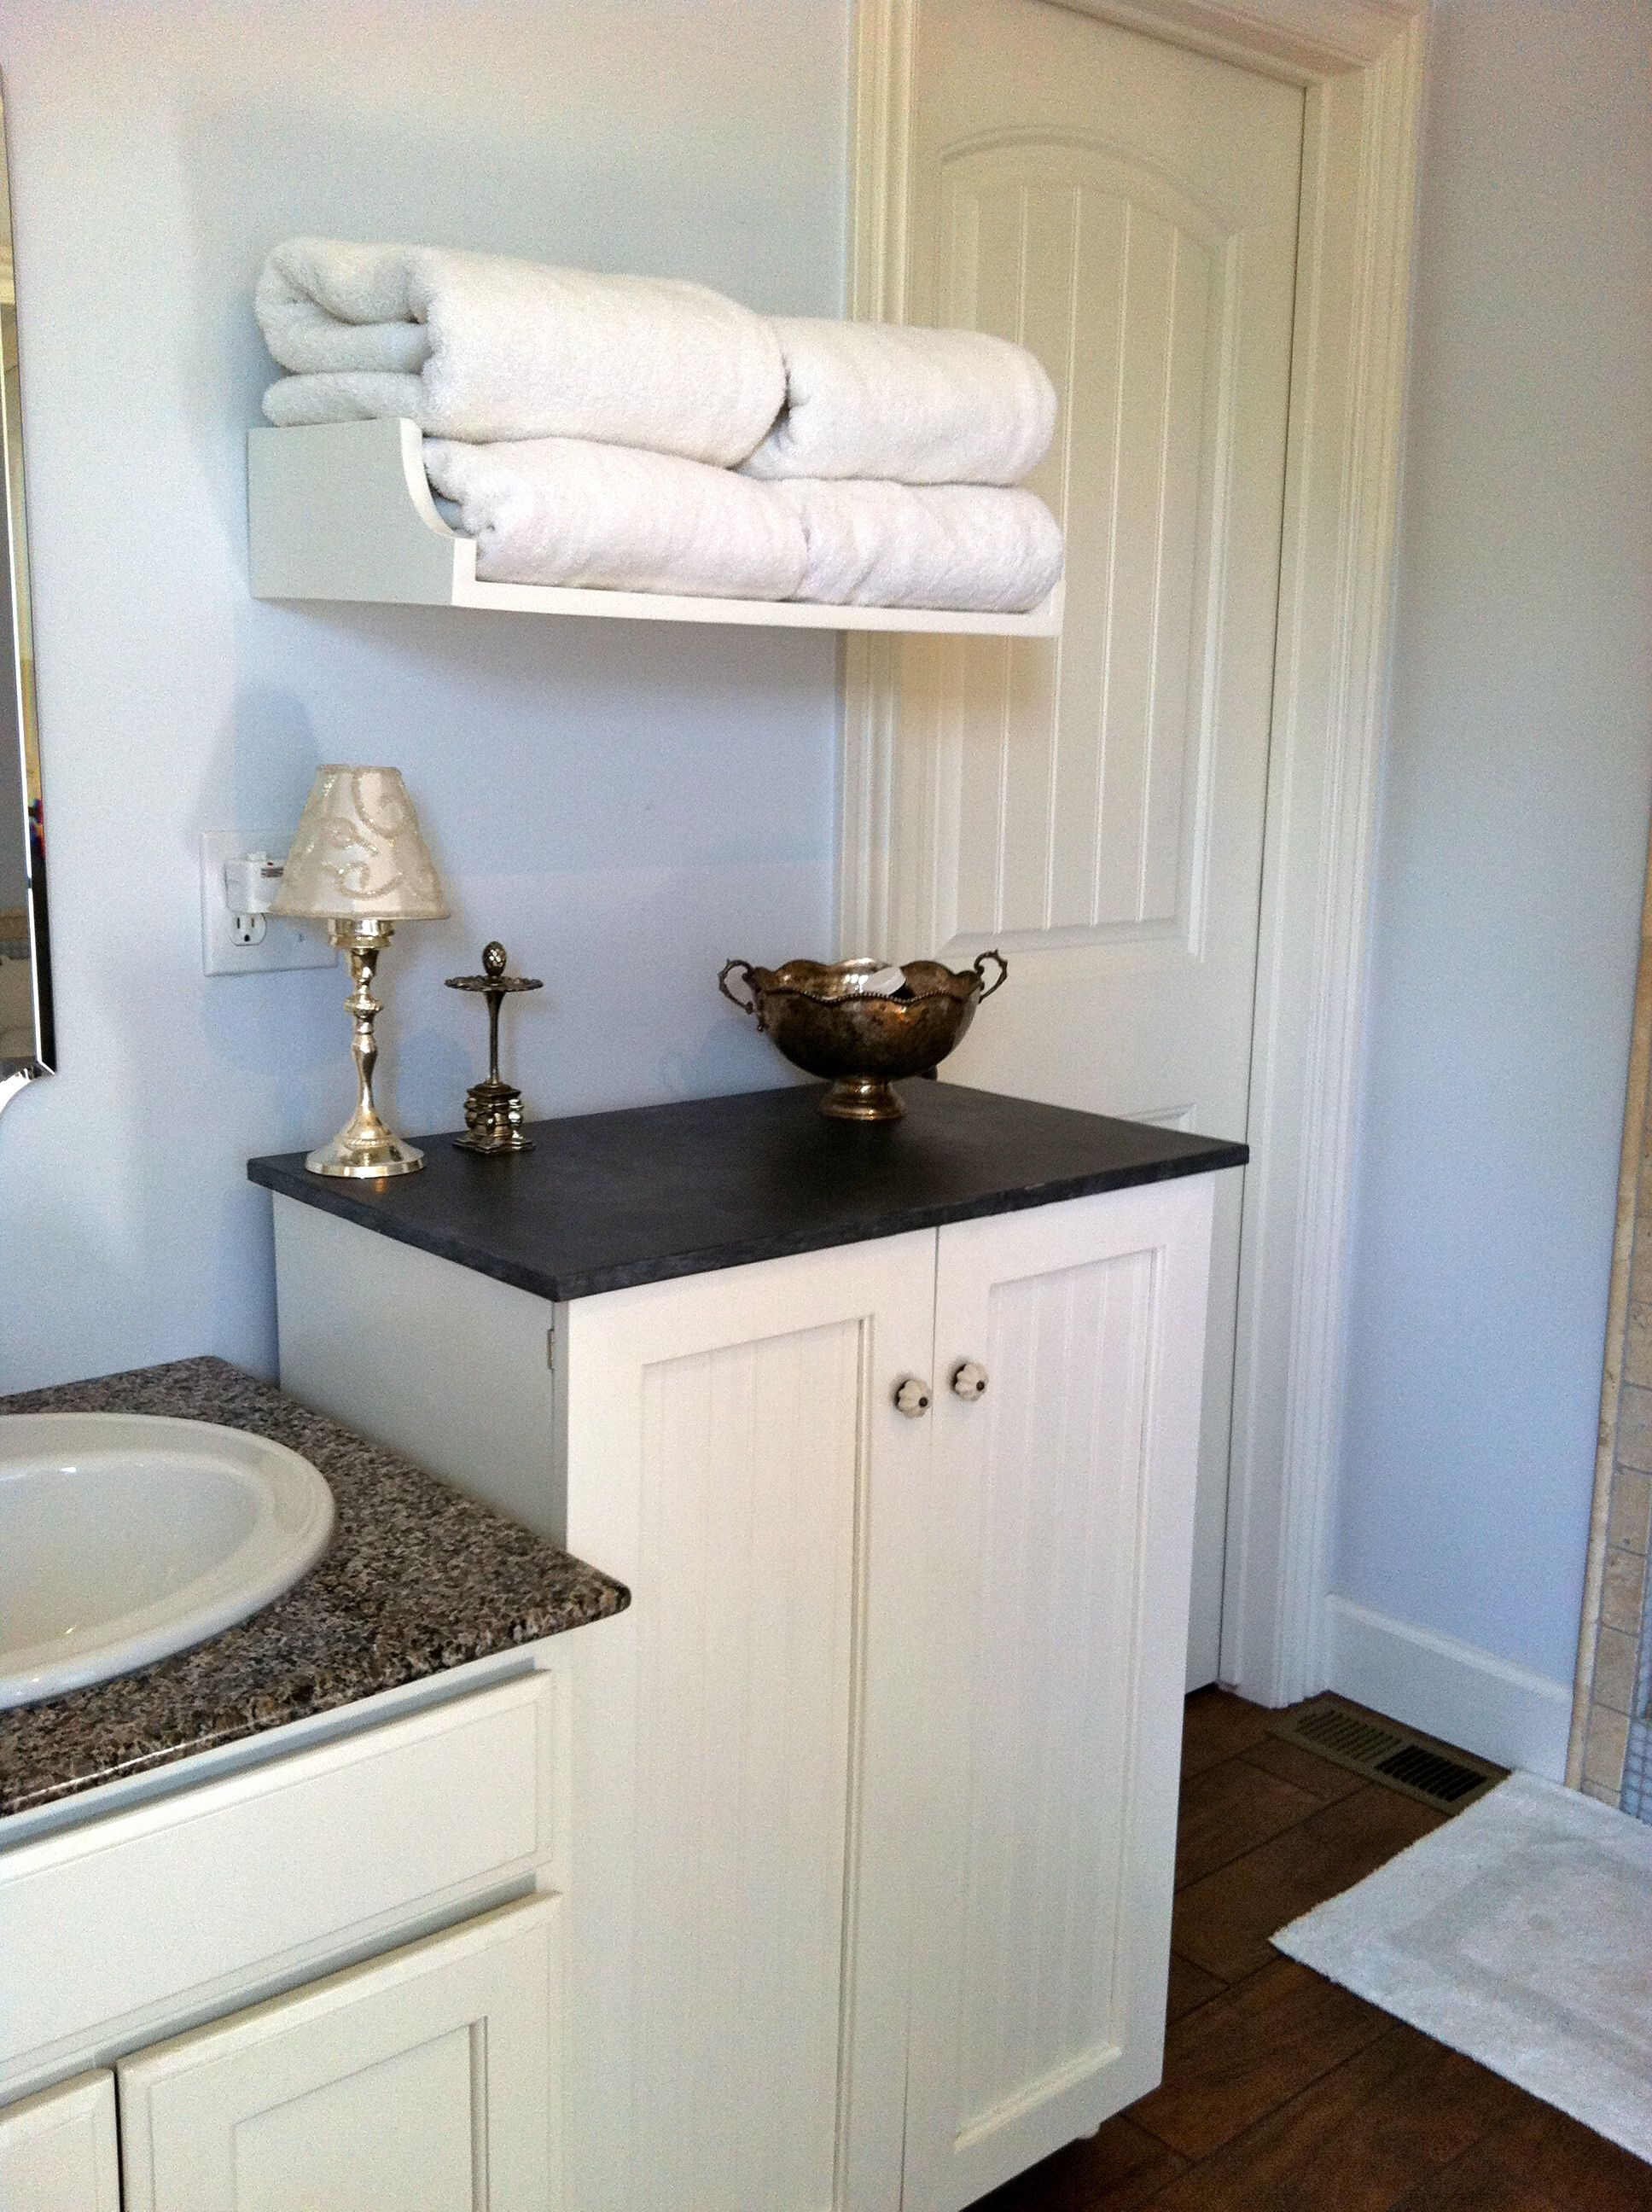 My laundry basket dresser with doors do it yourself home projects diy laundry basket dresser behind cabinet doors it is the perfect solution for all of the laundry baskets we have all over the house solutioingenieria Choice Image